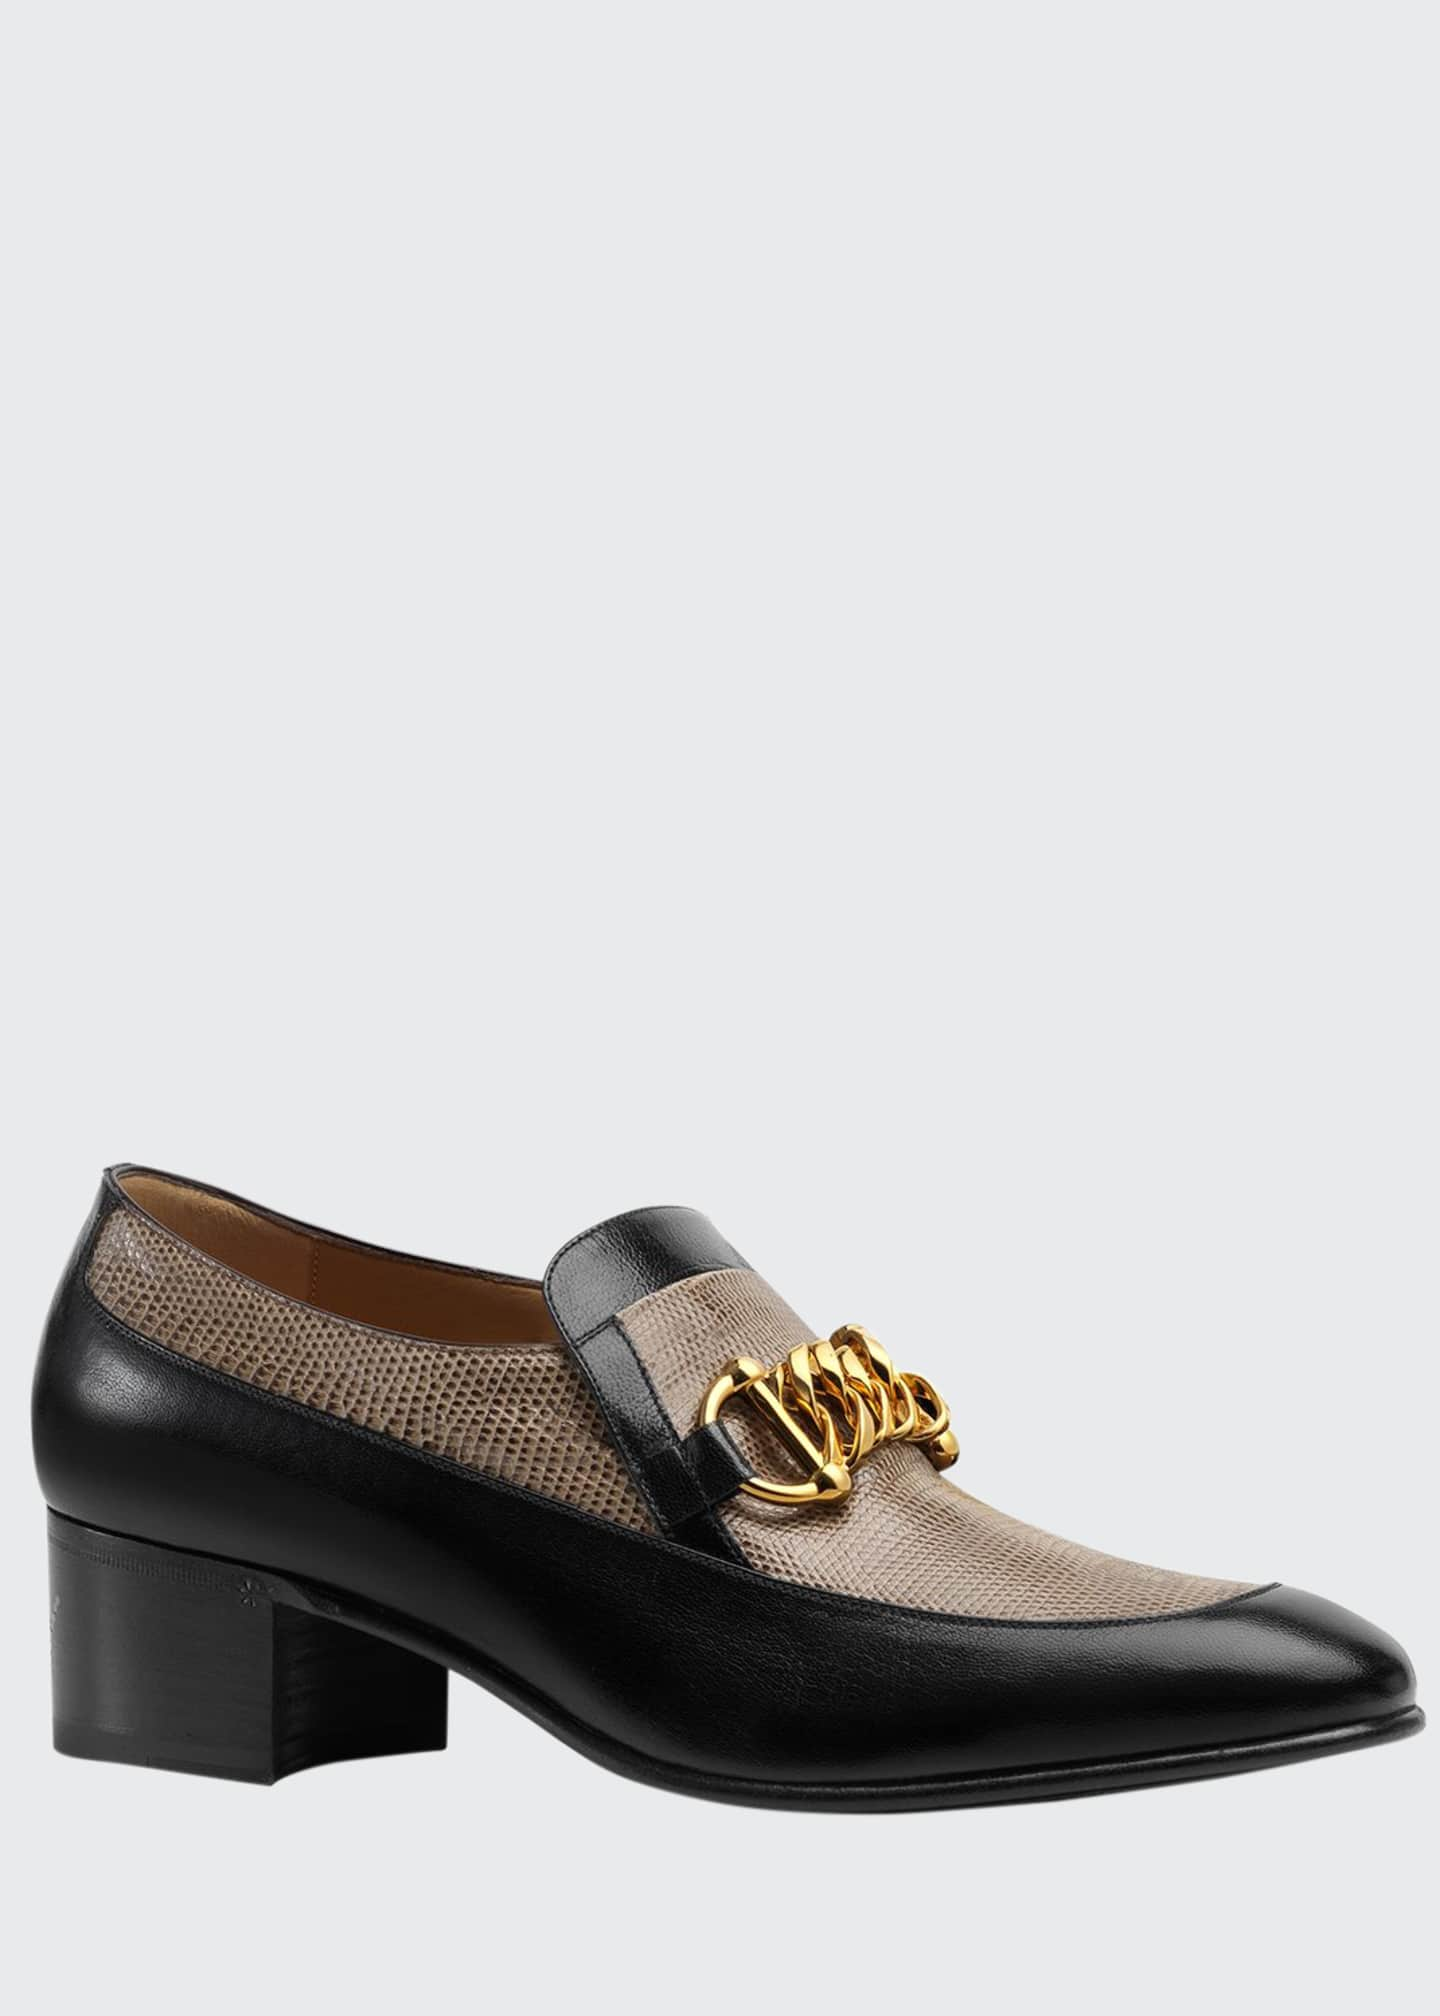 Image 1 of 4: Men's Ebal Horsebit Leather & Lizard Loafers